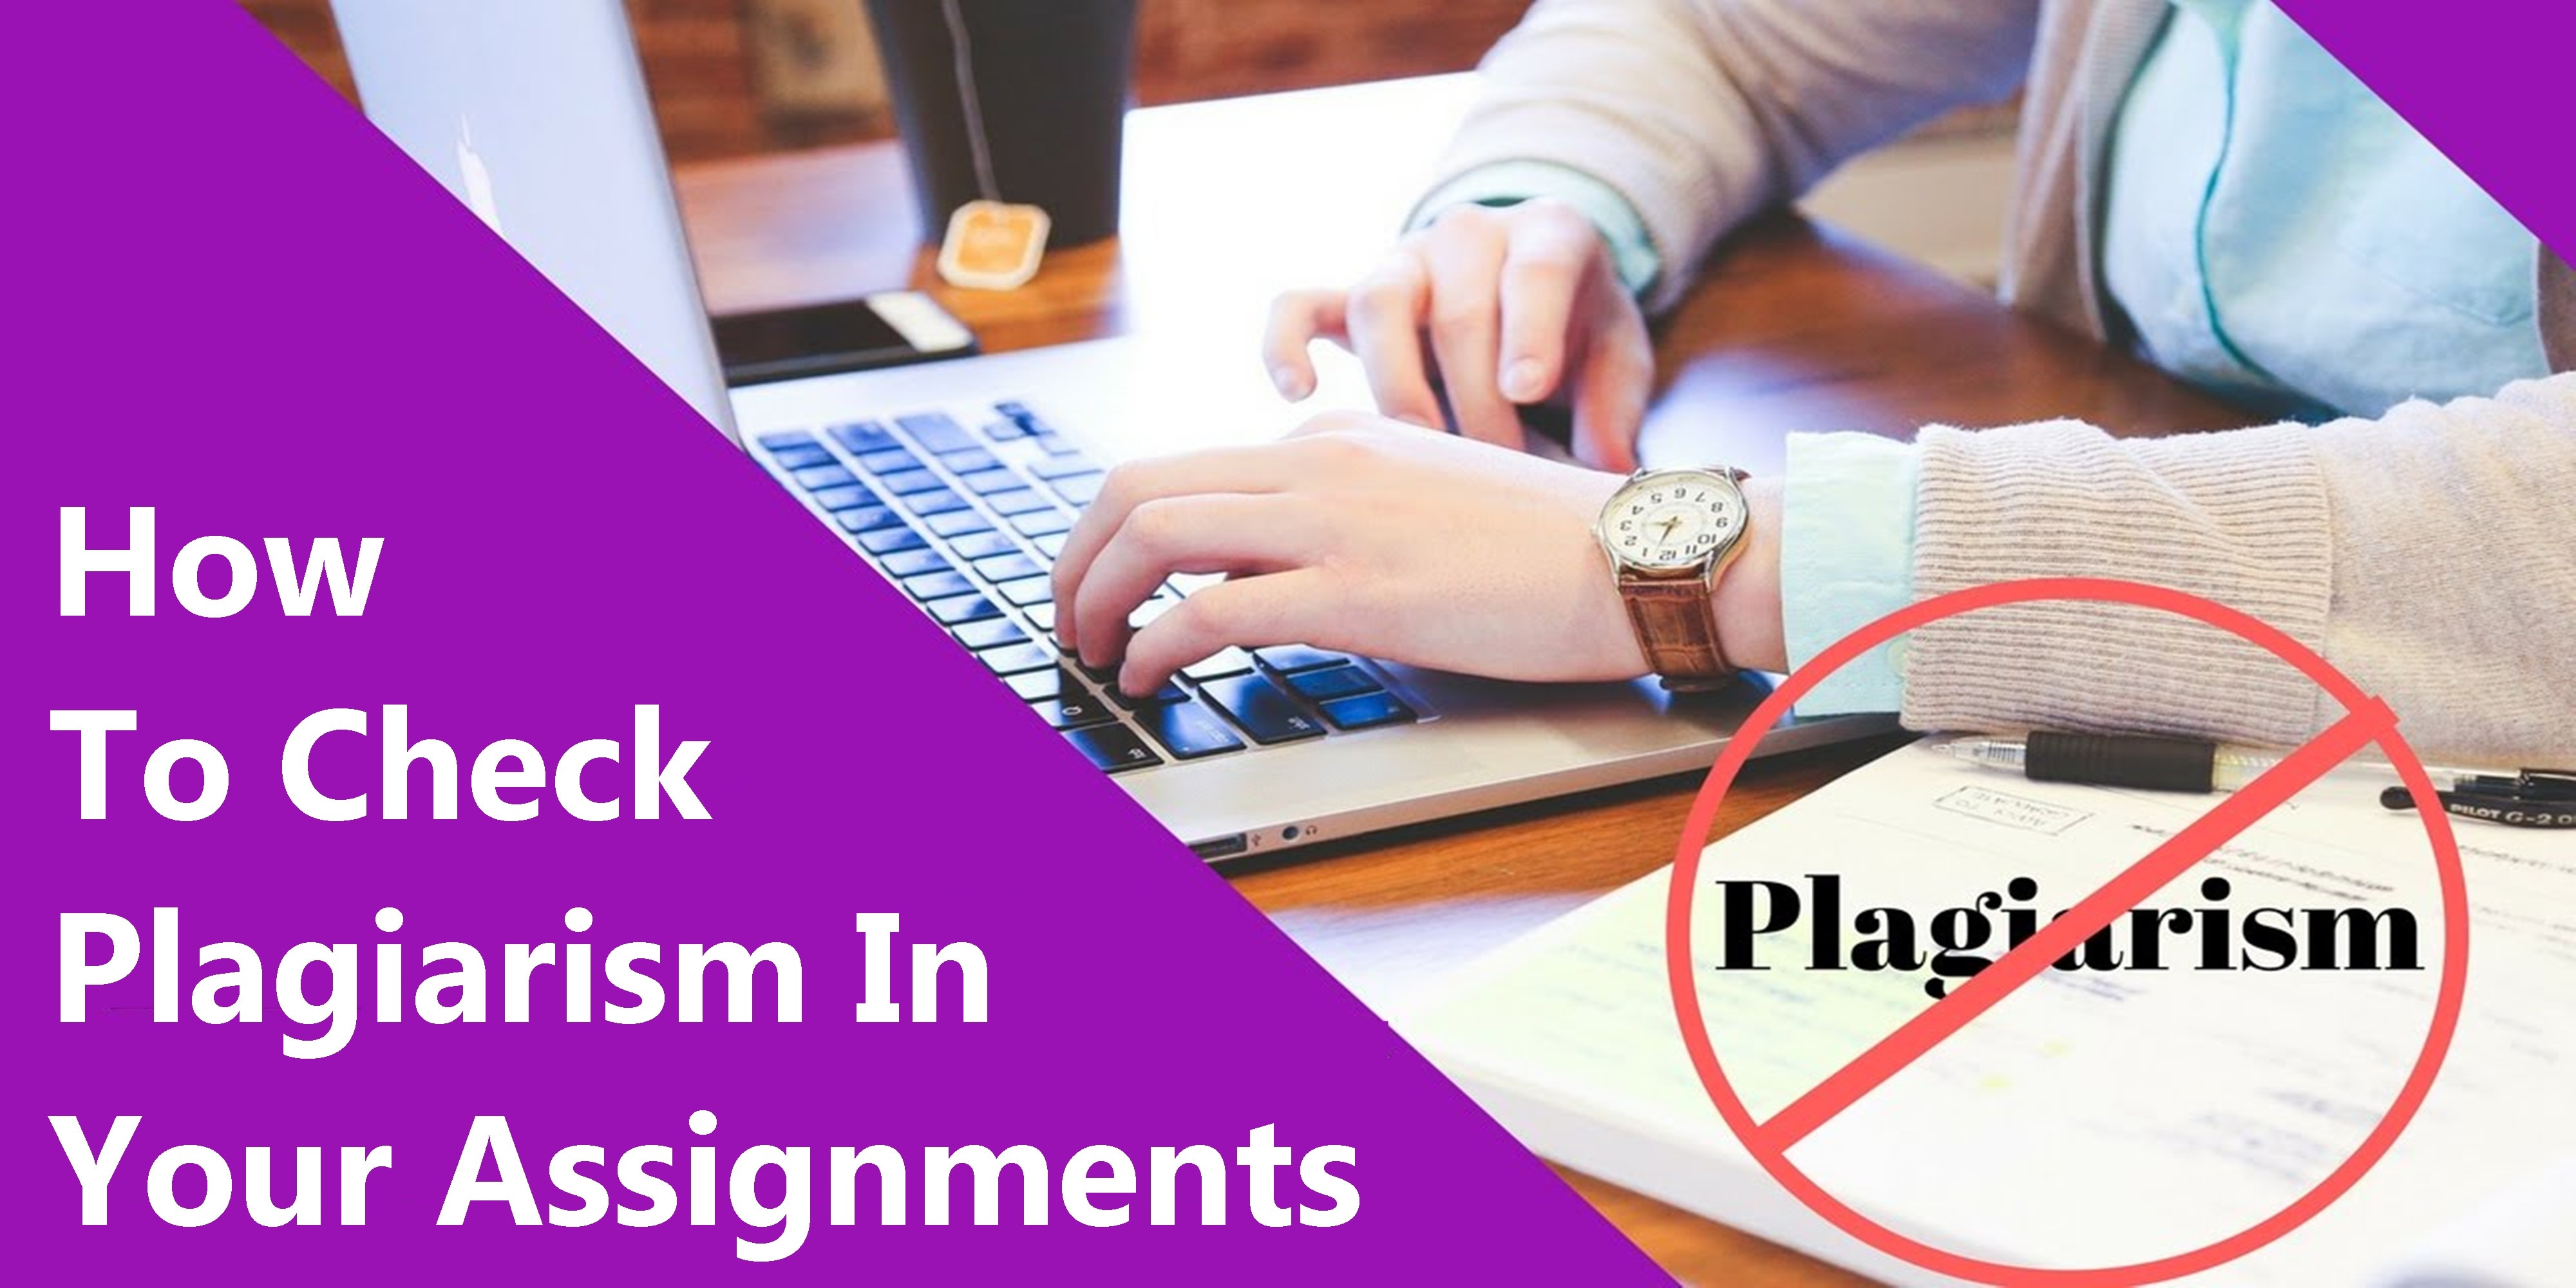 How To Check Plagiarism In Your Assignments: 5 Best Ways